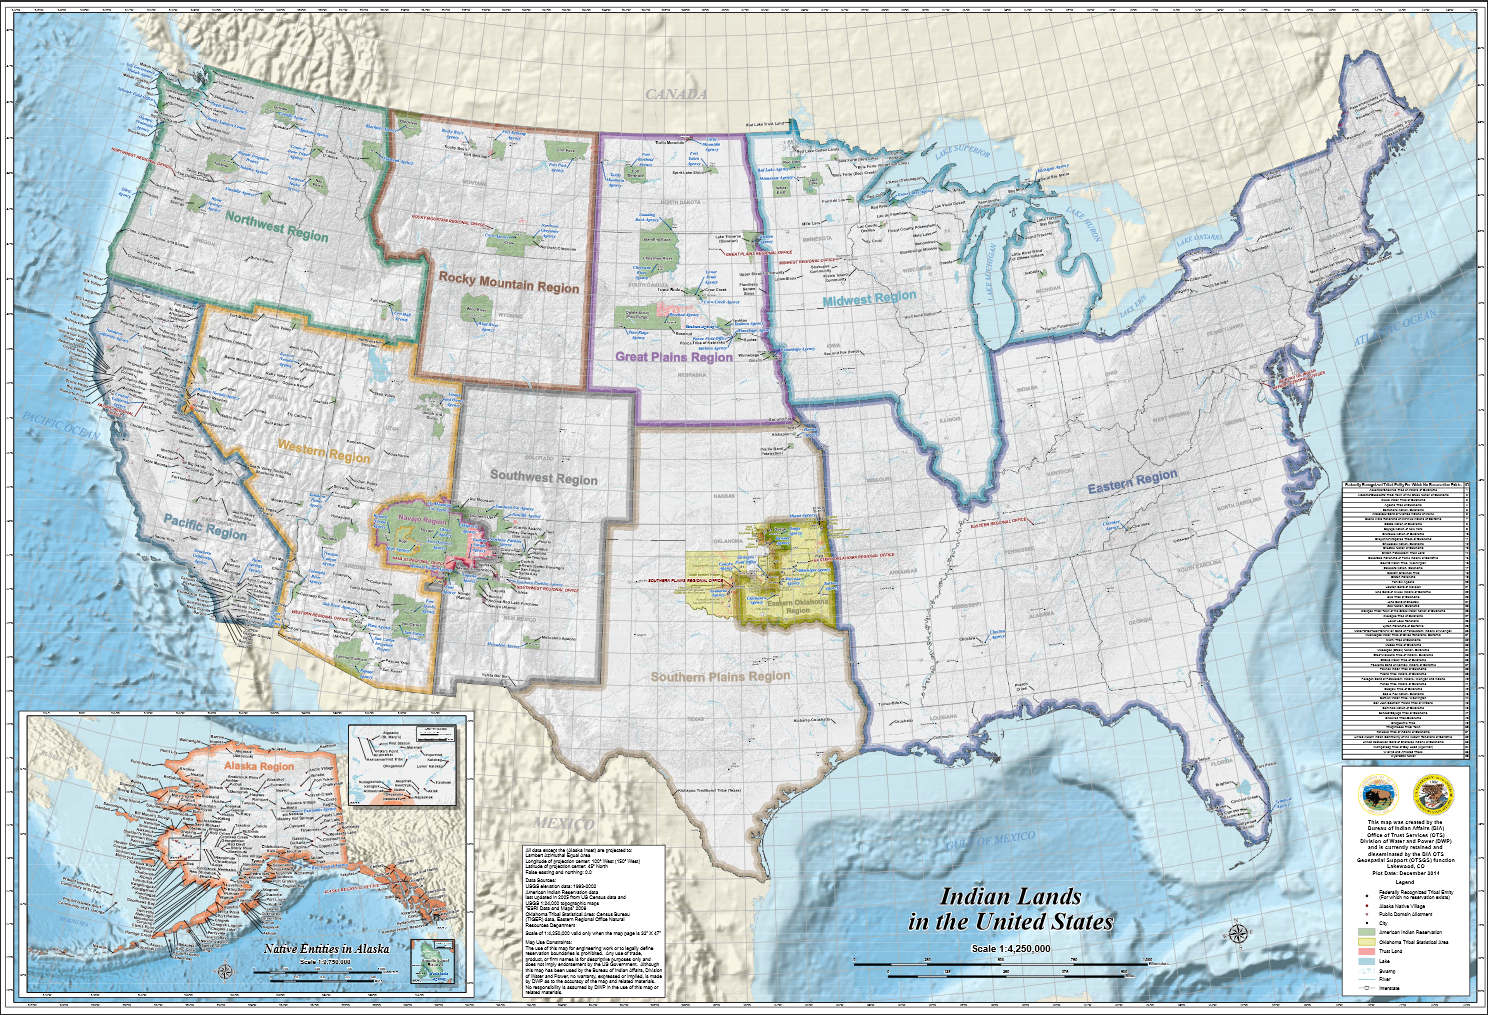 Indian Lands in the United States